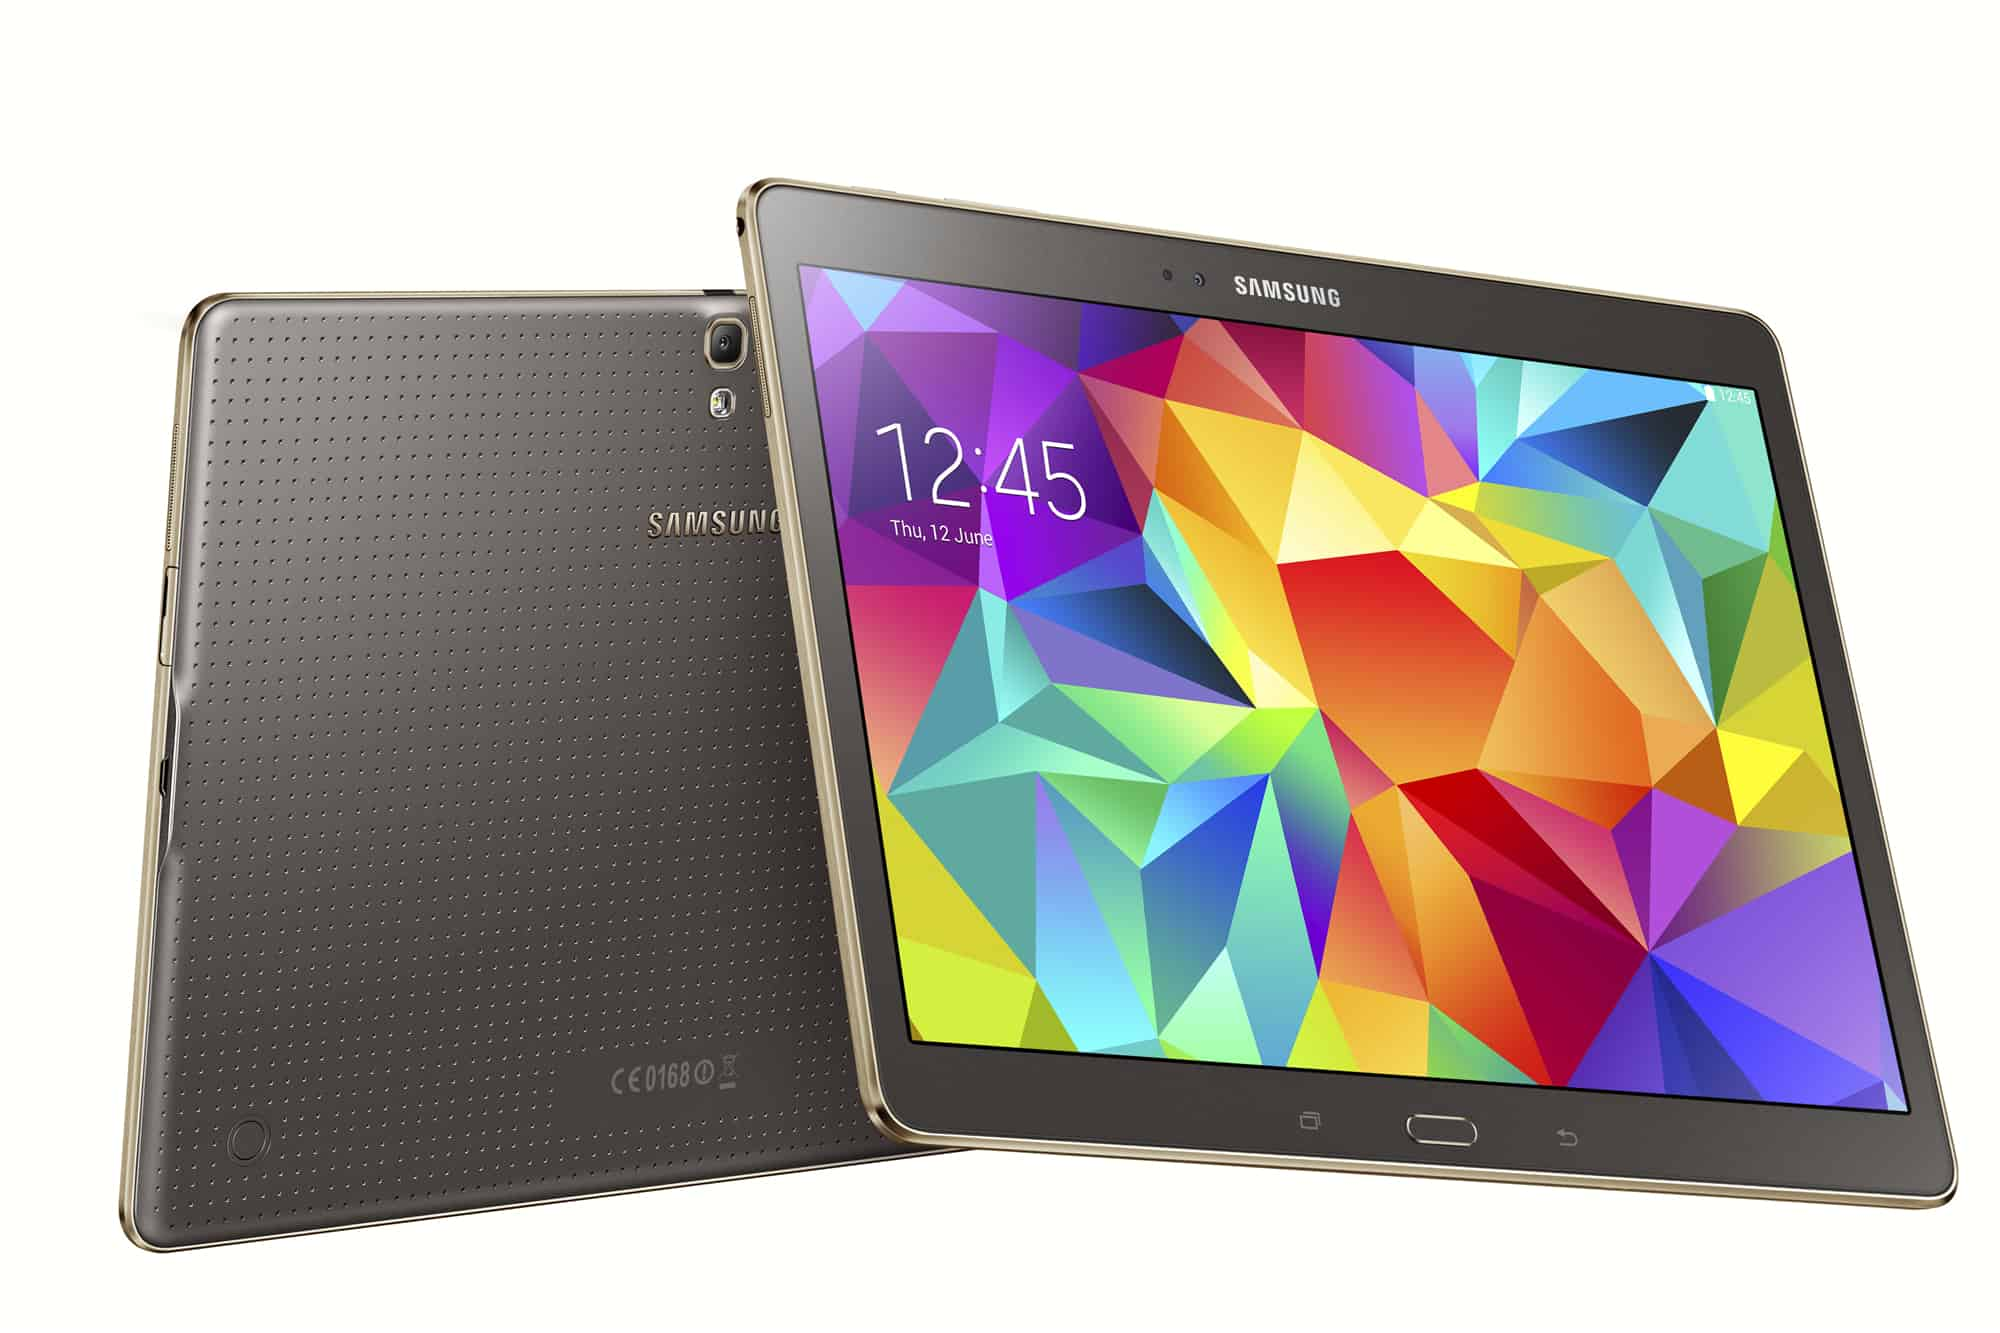 samsung galaxy tab s met amoled scherm officieel. Black Bedroom Furniture Sets. Home Design Ideas